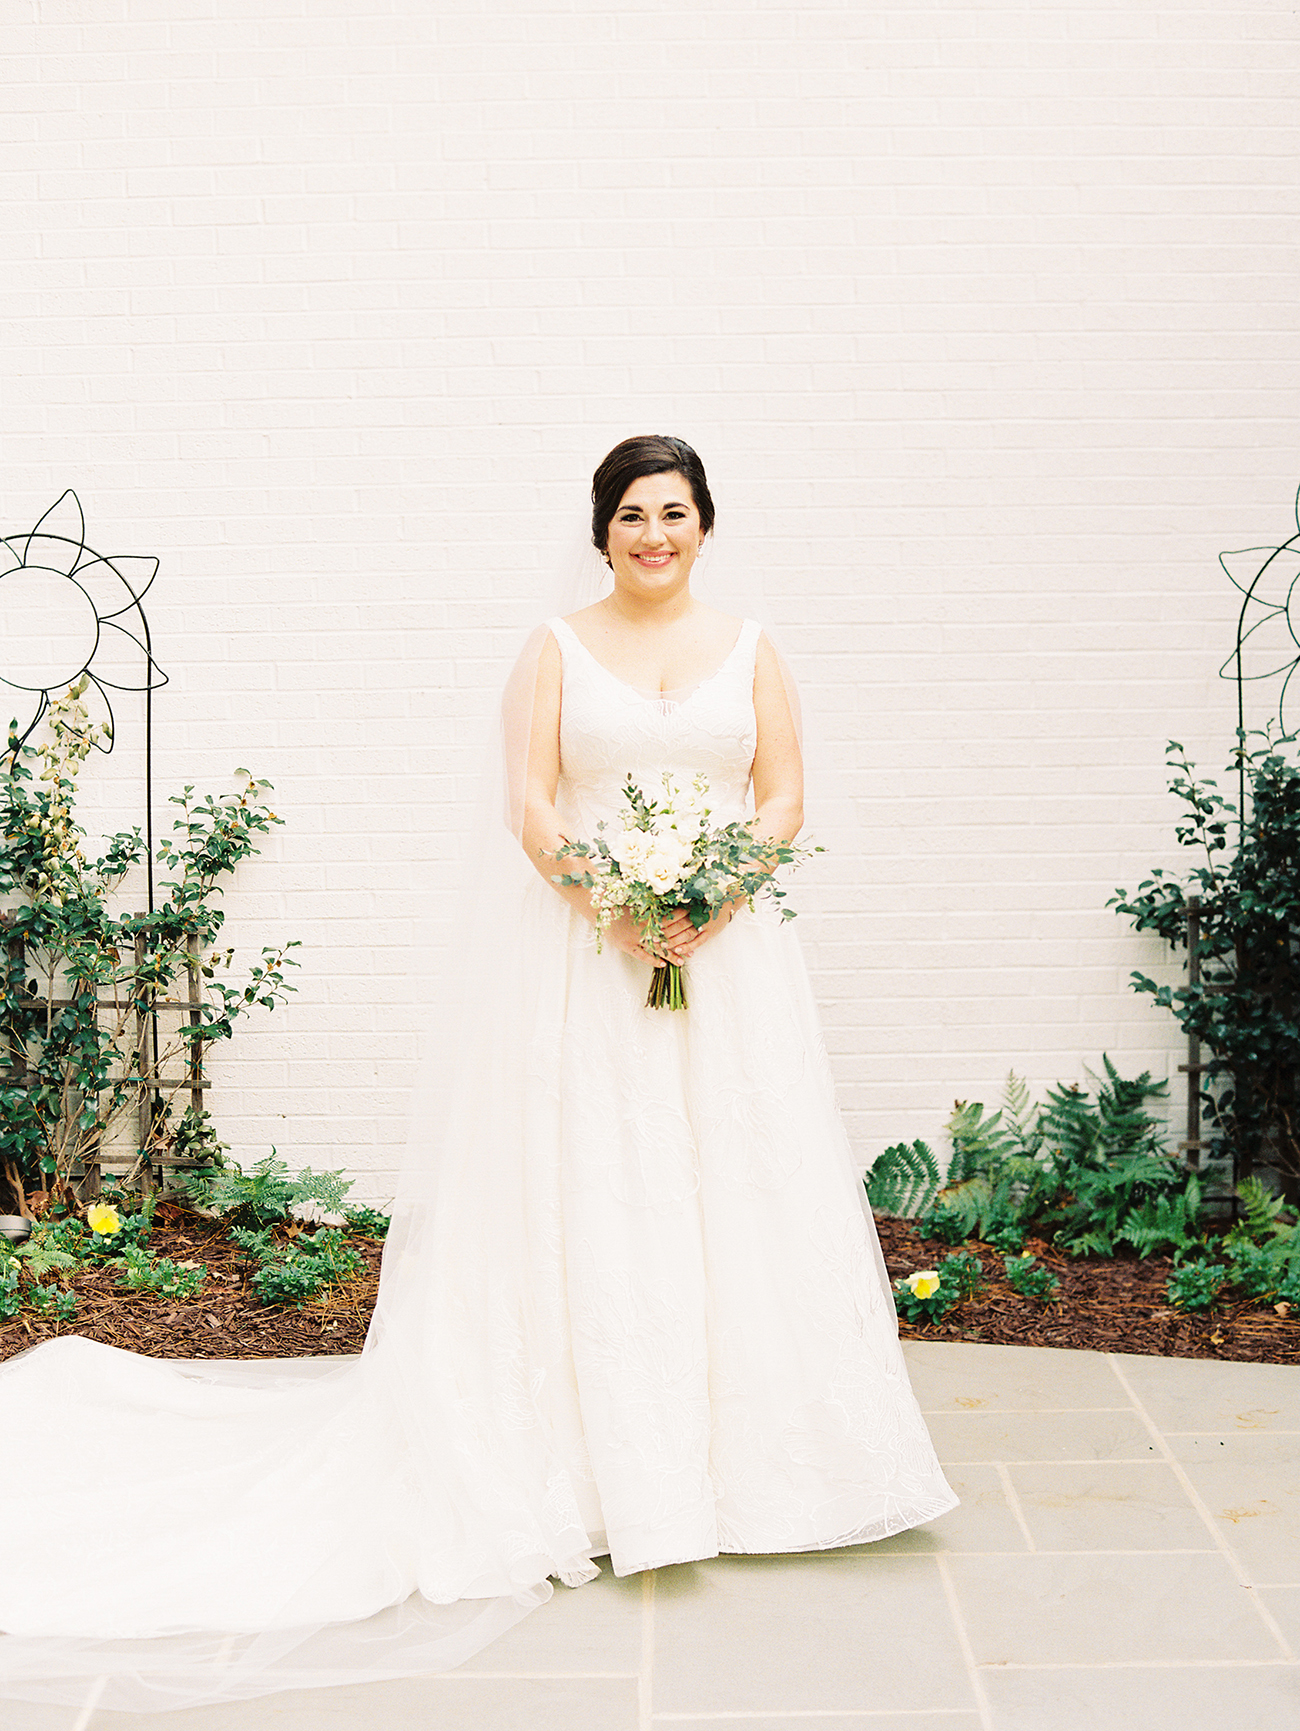 nrp-nancy-ashleydavisbridals-2011